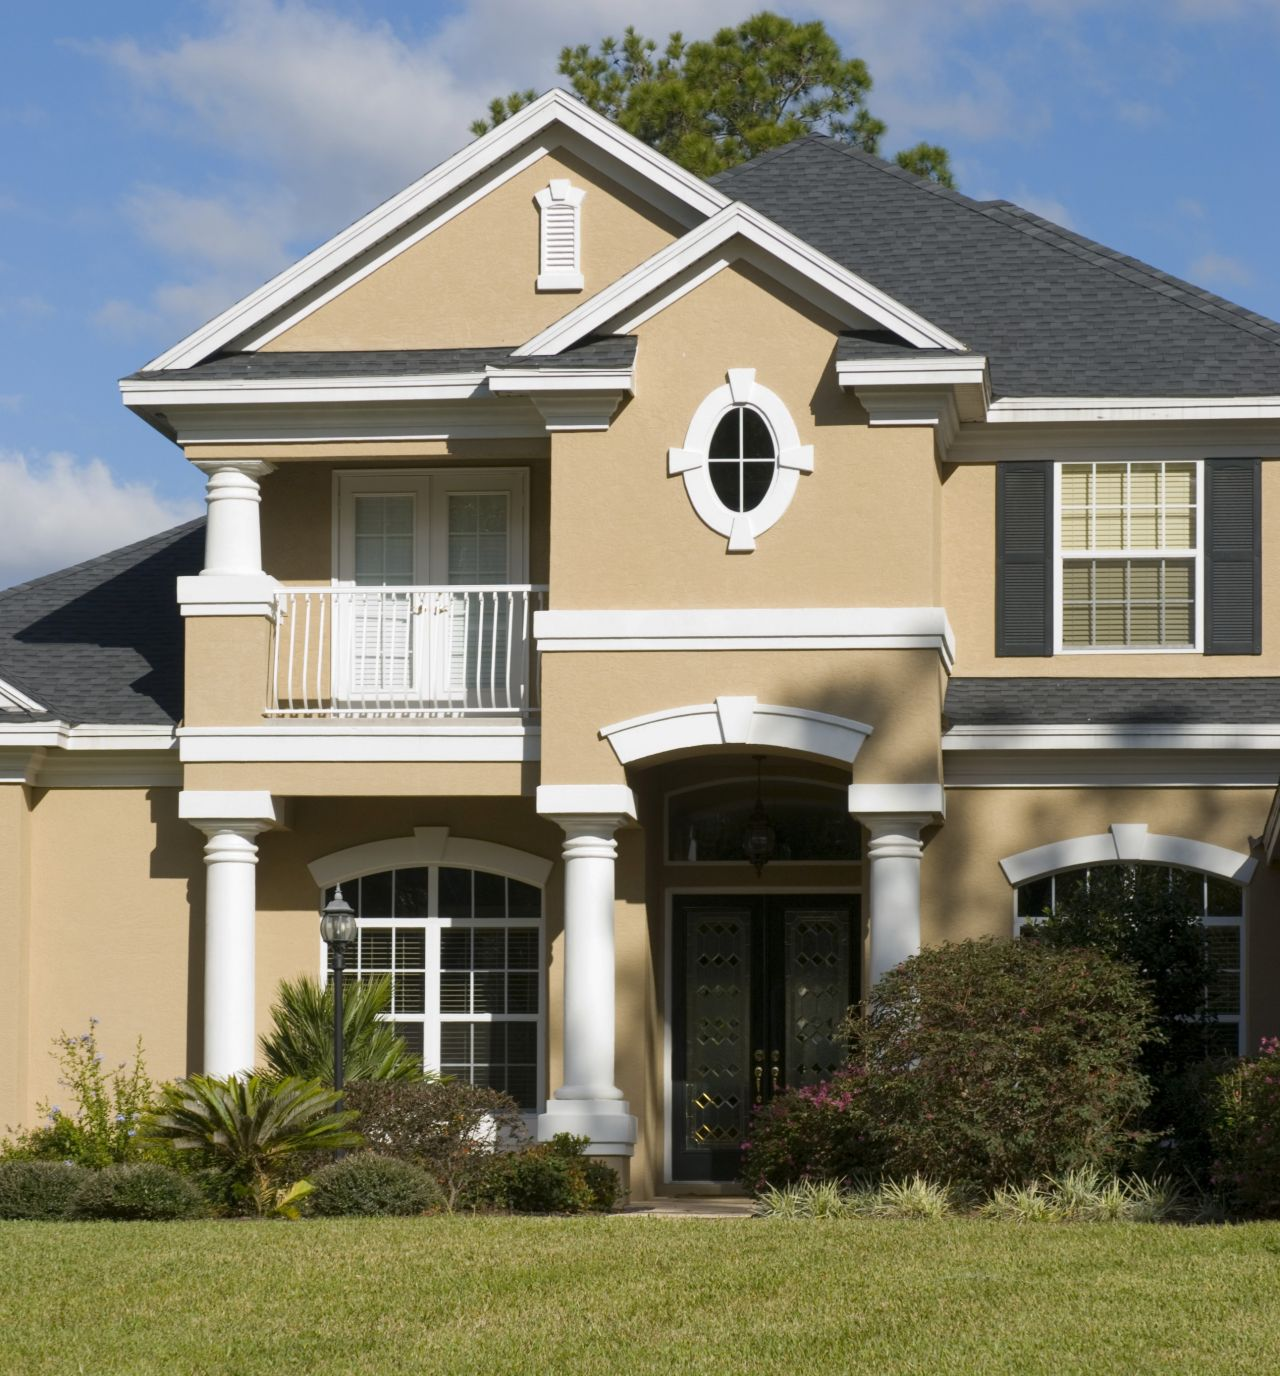 Exterior Wall Paint : Exterior paint schemes and consider your surroundings